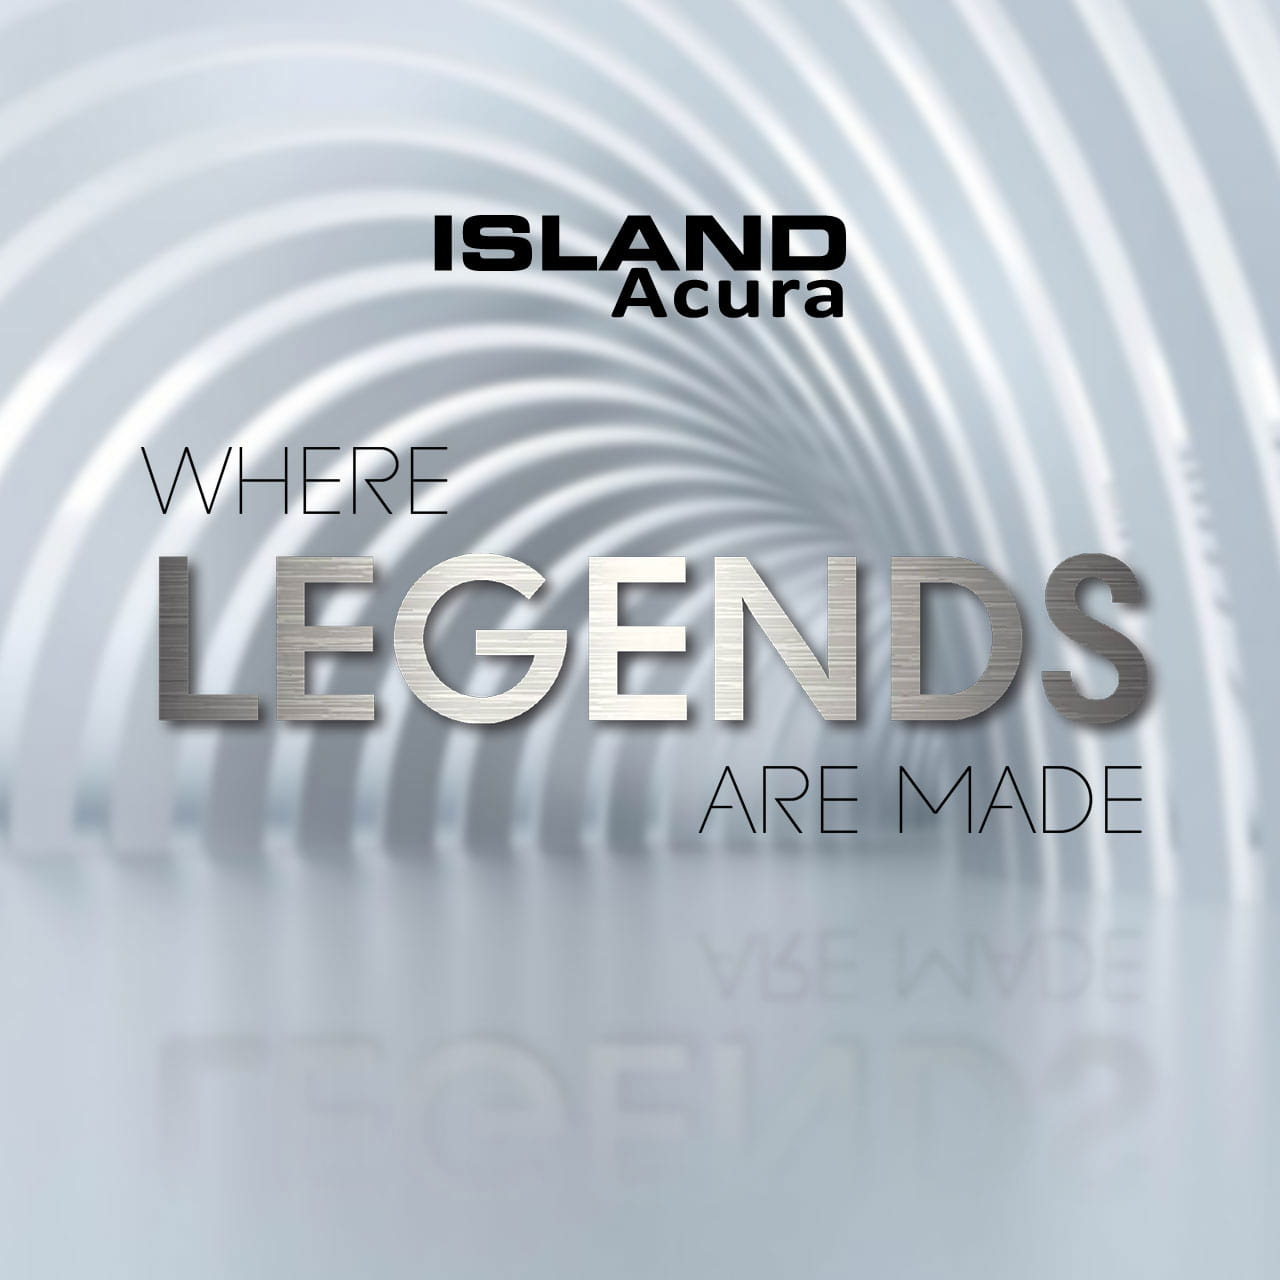 island acura where legends are made